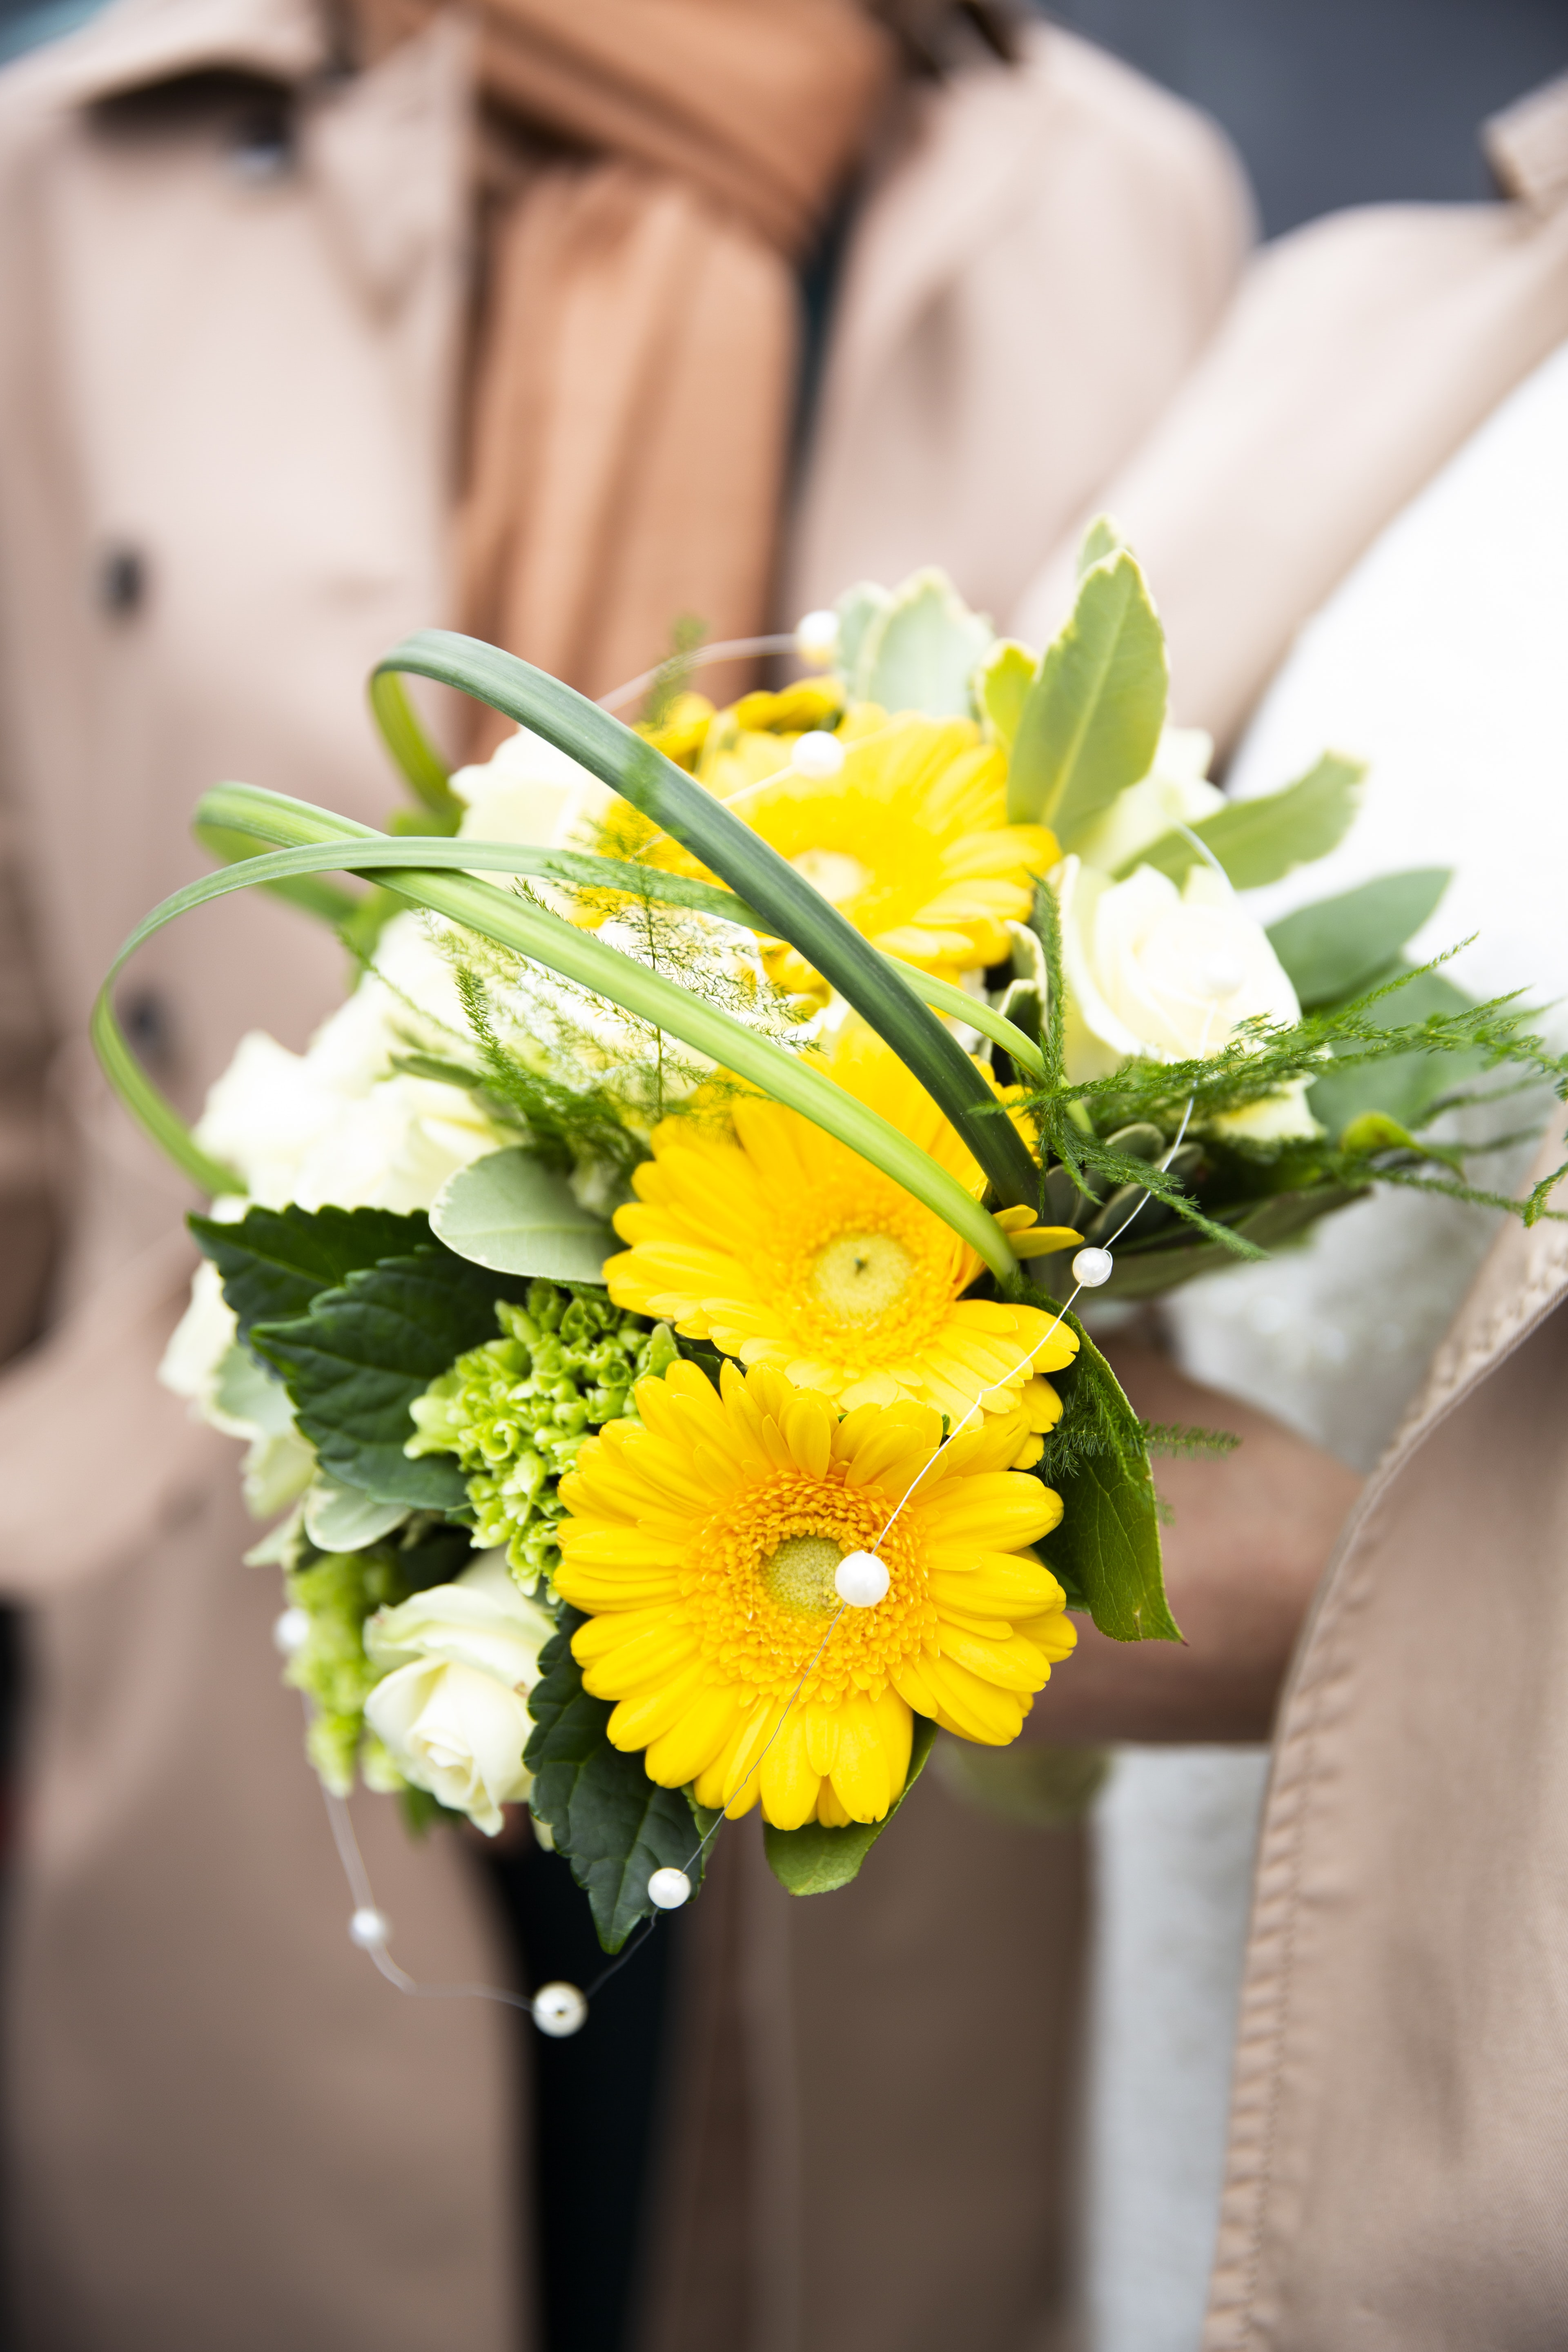 person holding yellow petaled flowers